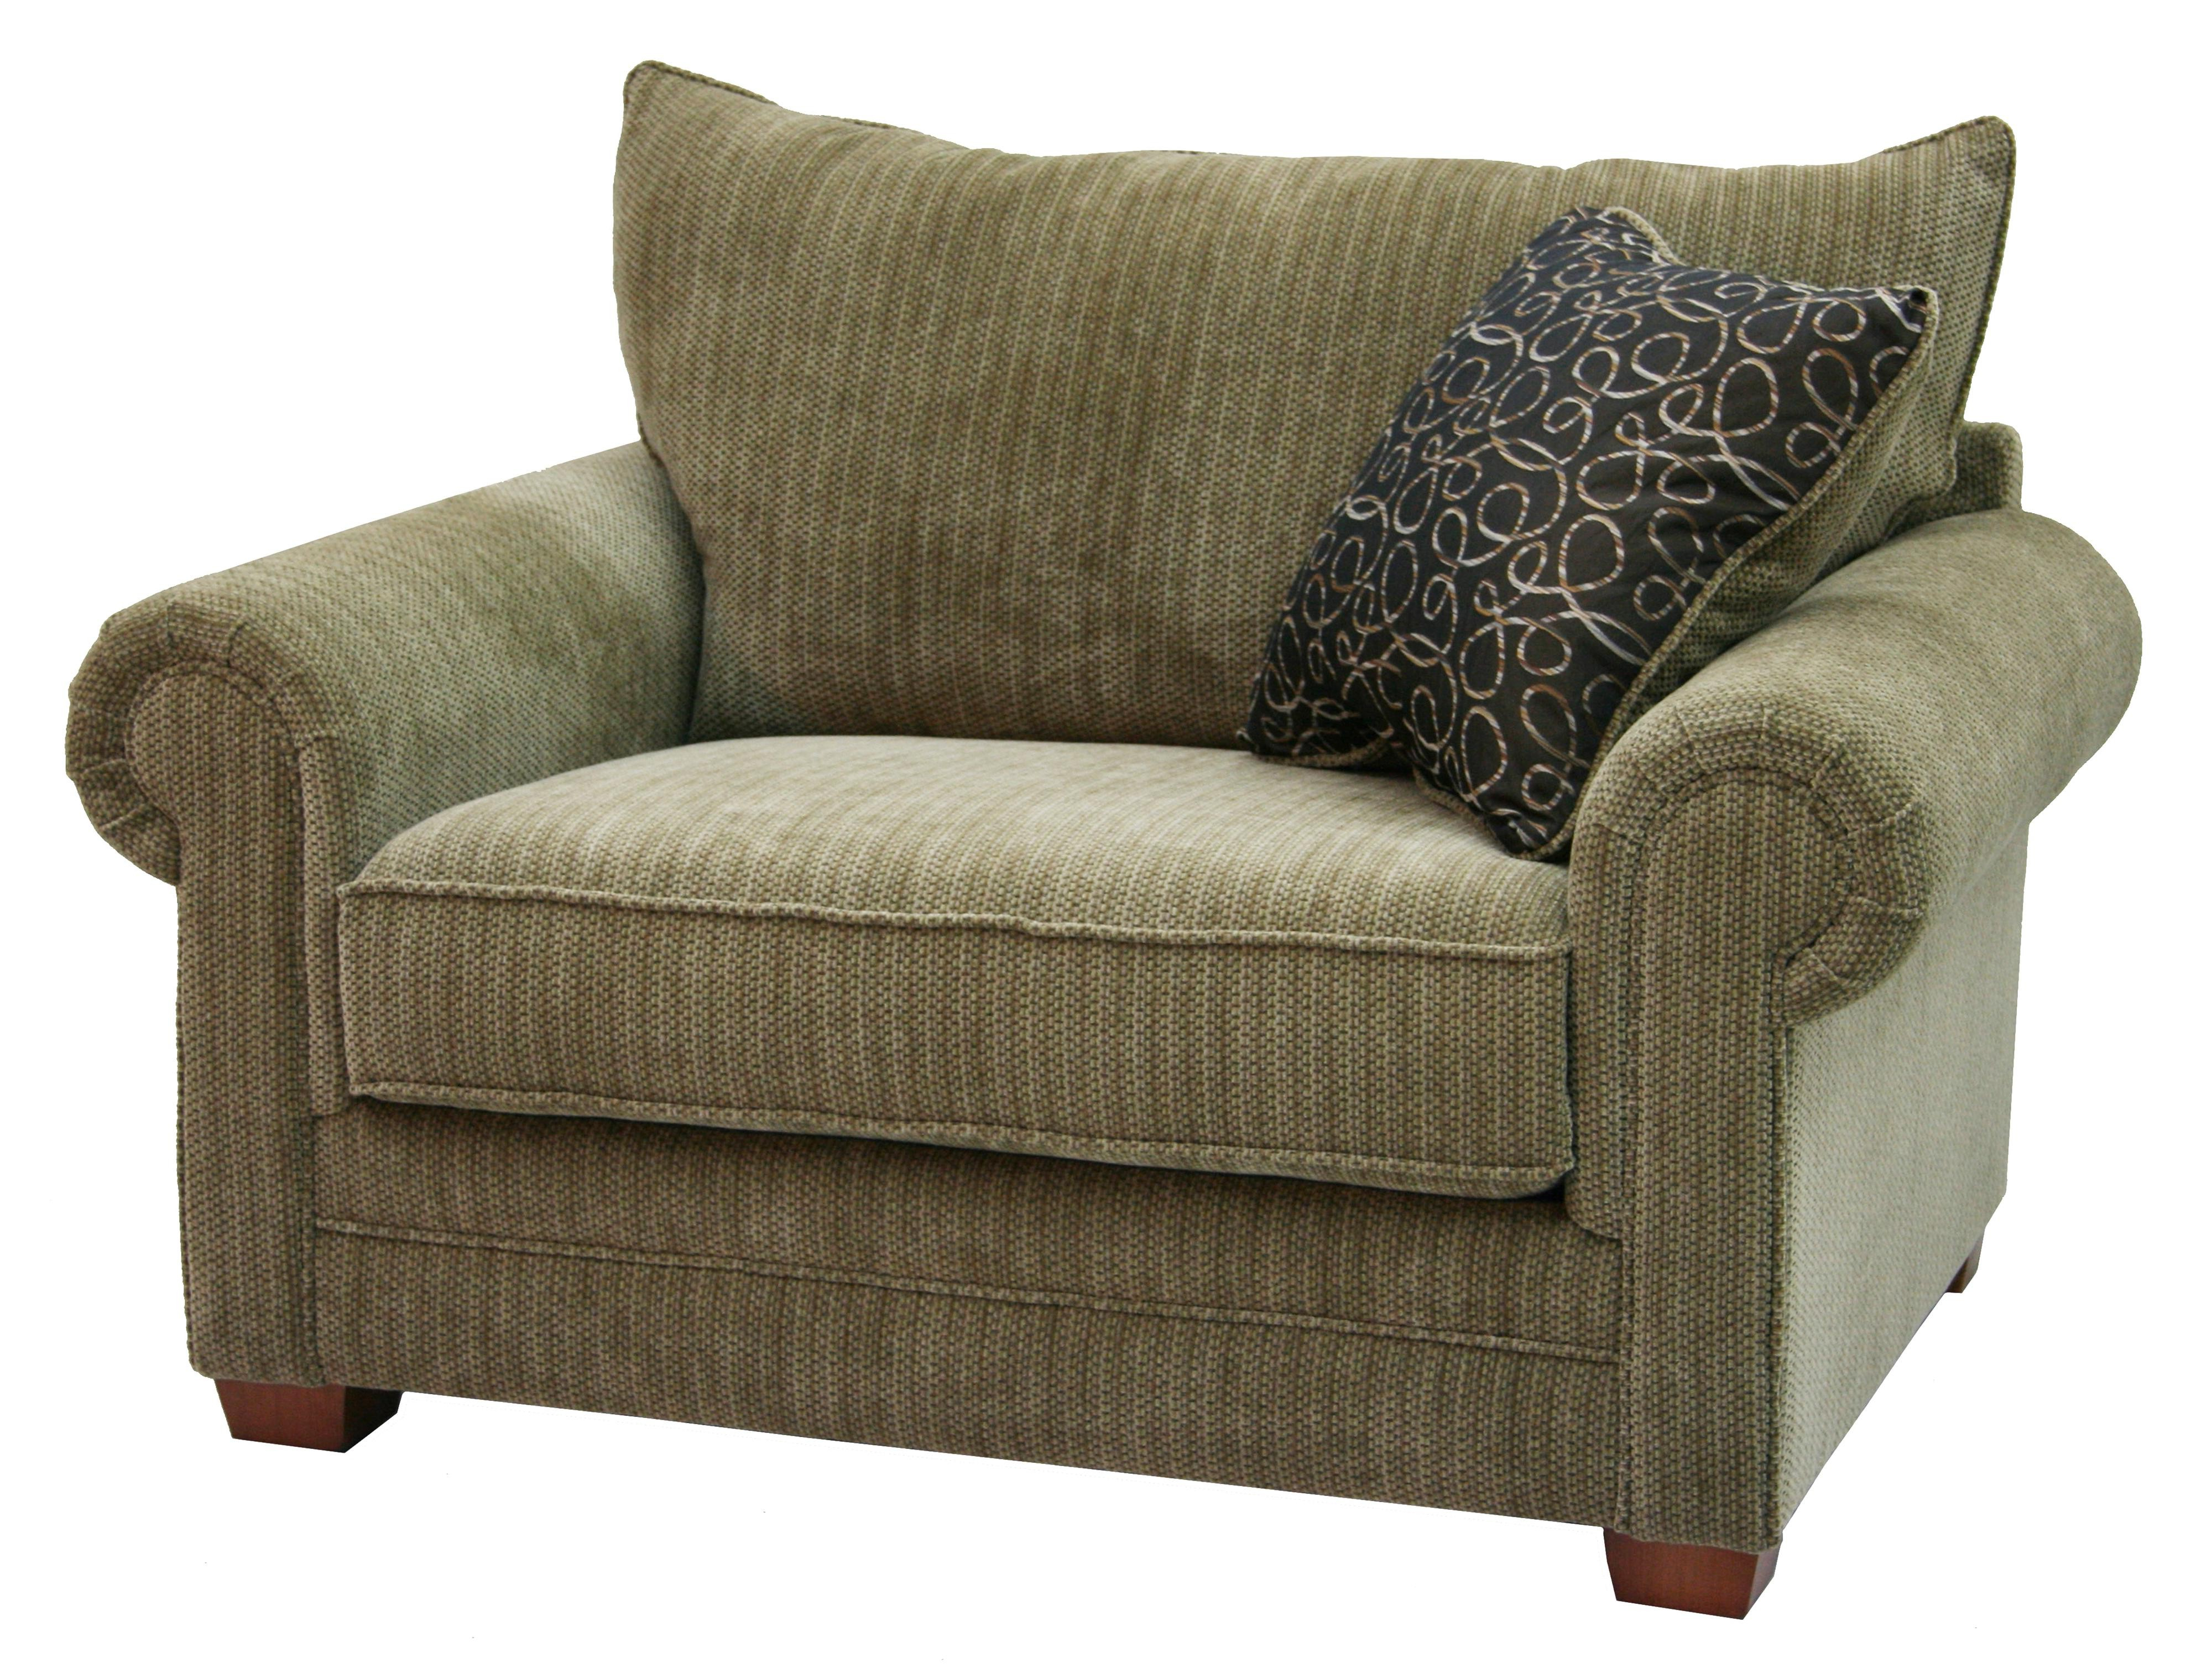 Most Recent Jackson Furniture Anniston Oversized Rolled Arm Chair Lindy S And Pertaining To Maddox Oversized Sofa Chairs (View 14 of 20)